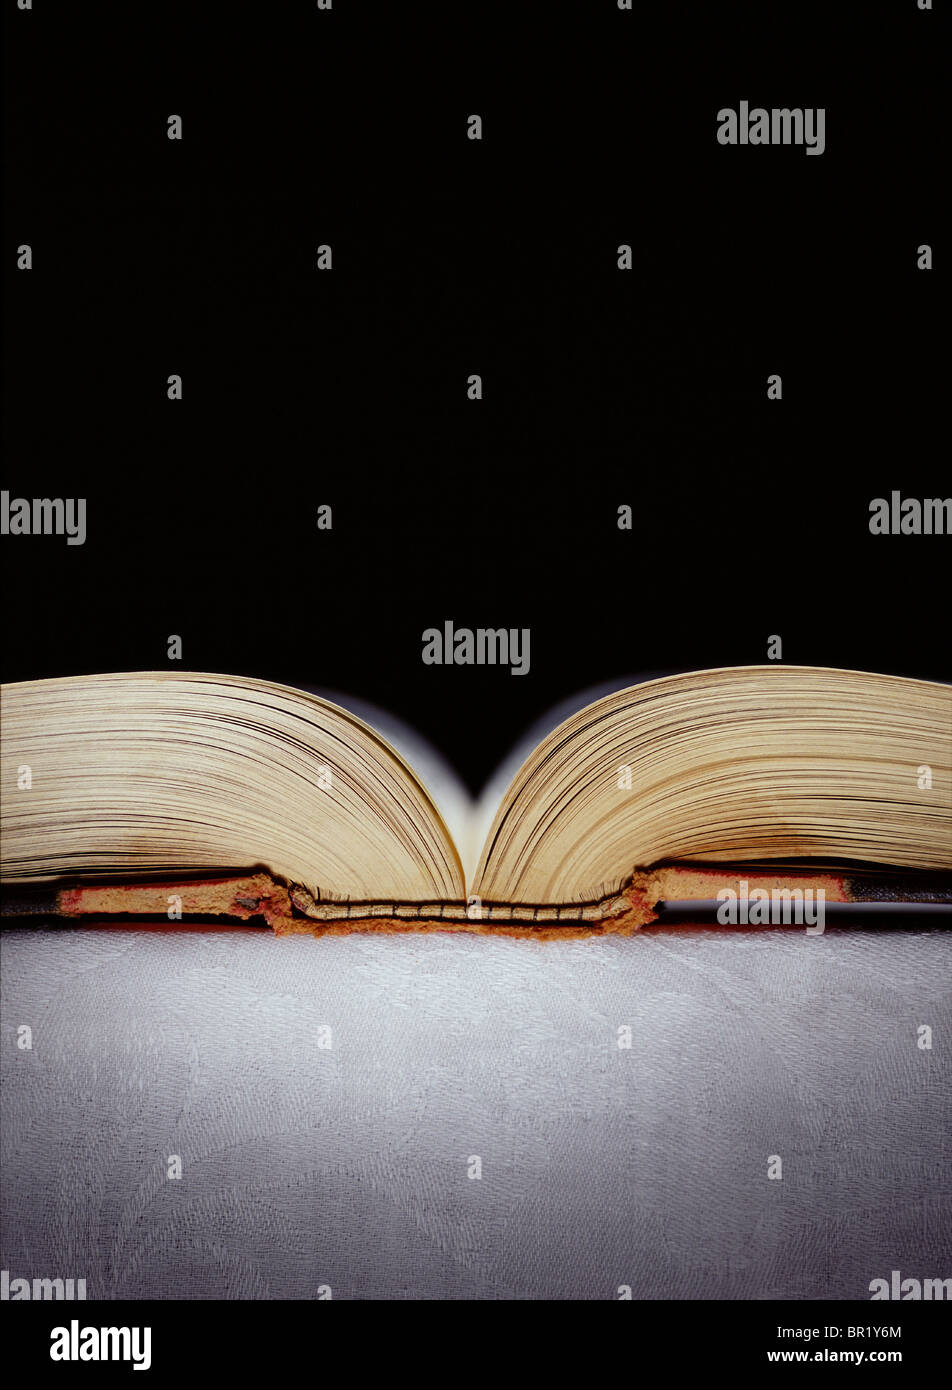 Book laying open on a table surface with black background. - Stock Image